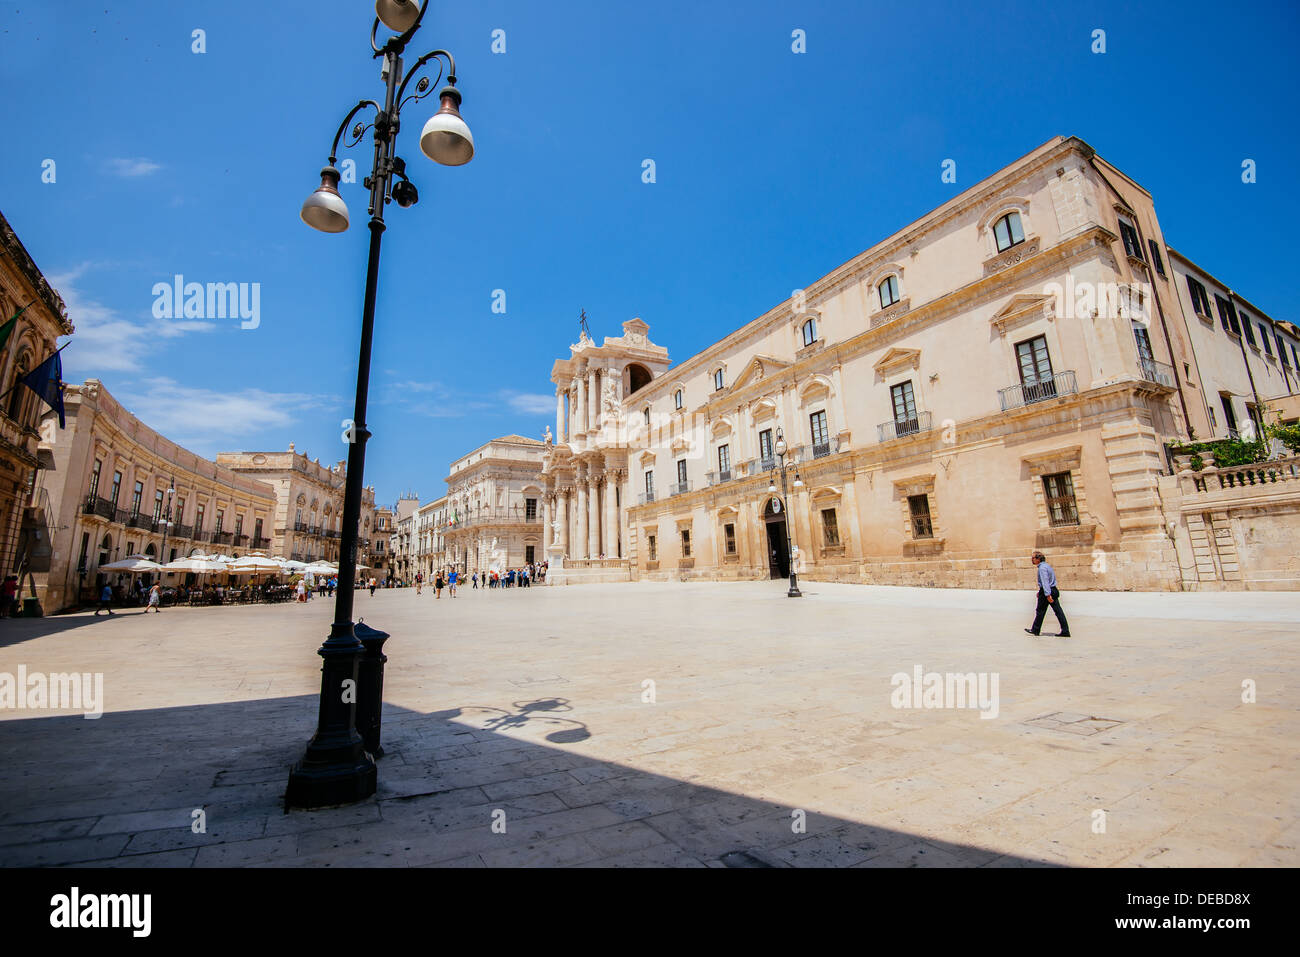 Piazza Duomo at Syracuse in Sicily on sunny day in July. - Stock Image